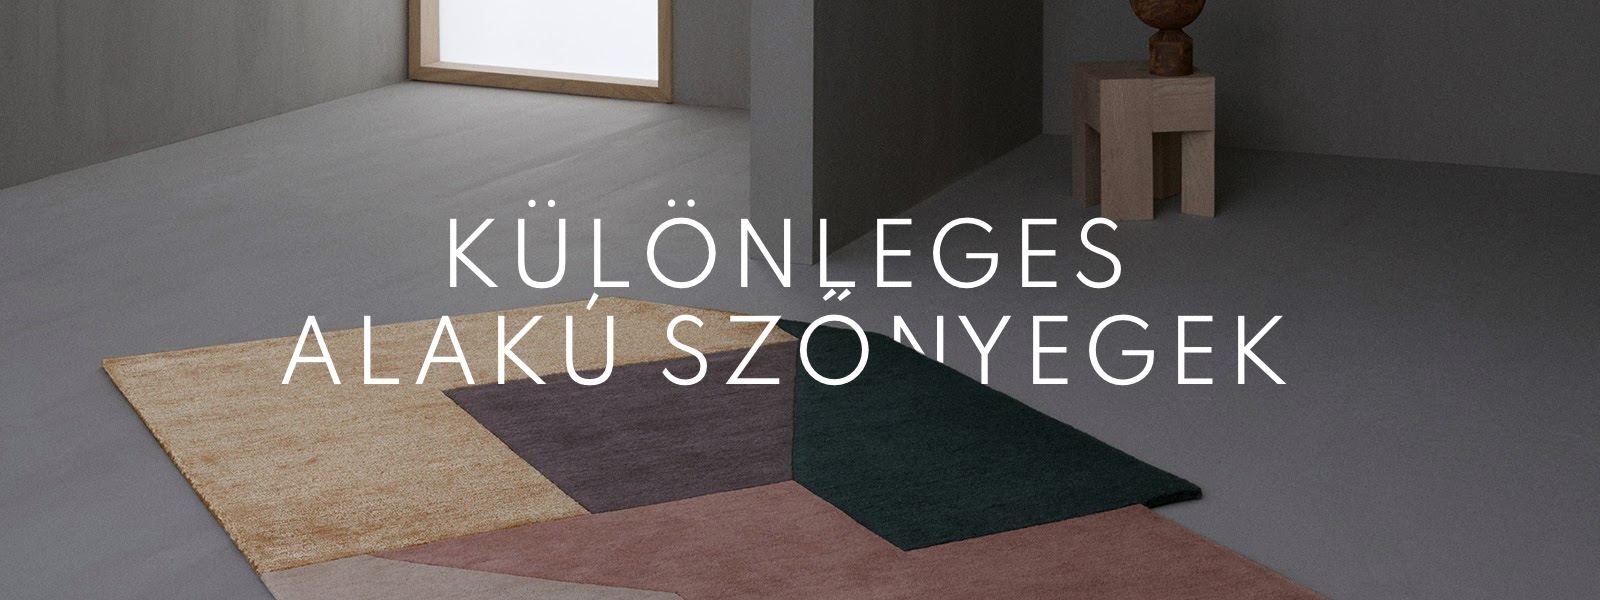 innoshop-kulonleges-alaku-szonyegek-special-shaped-rugs.jpg